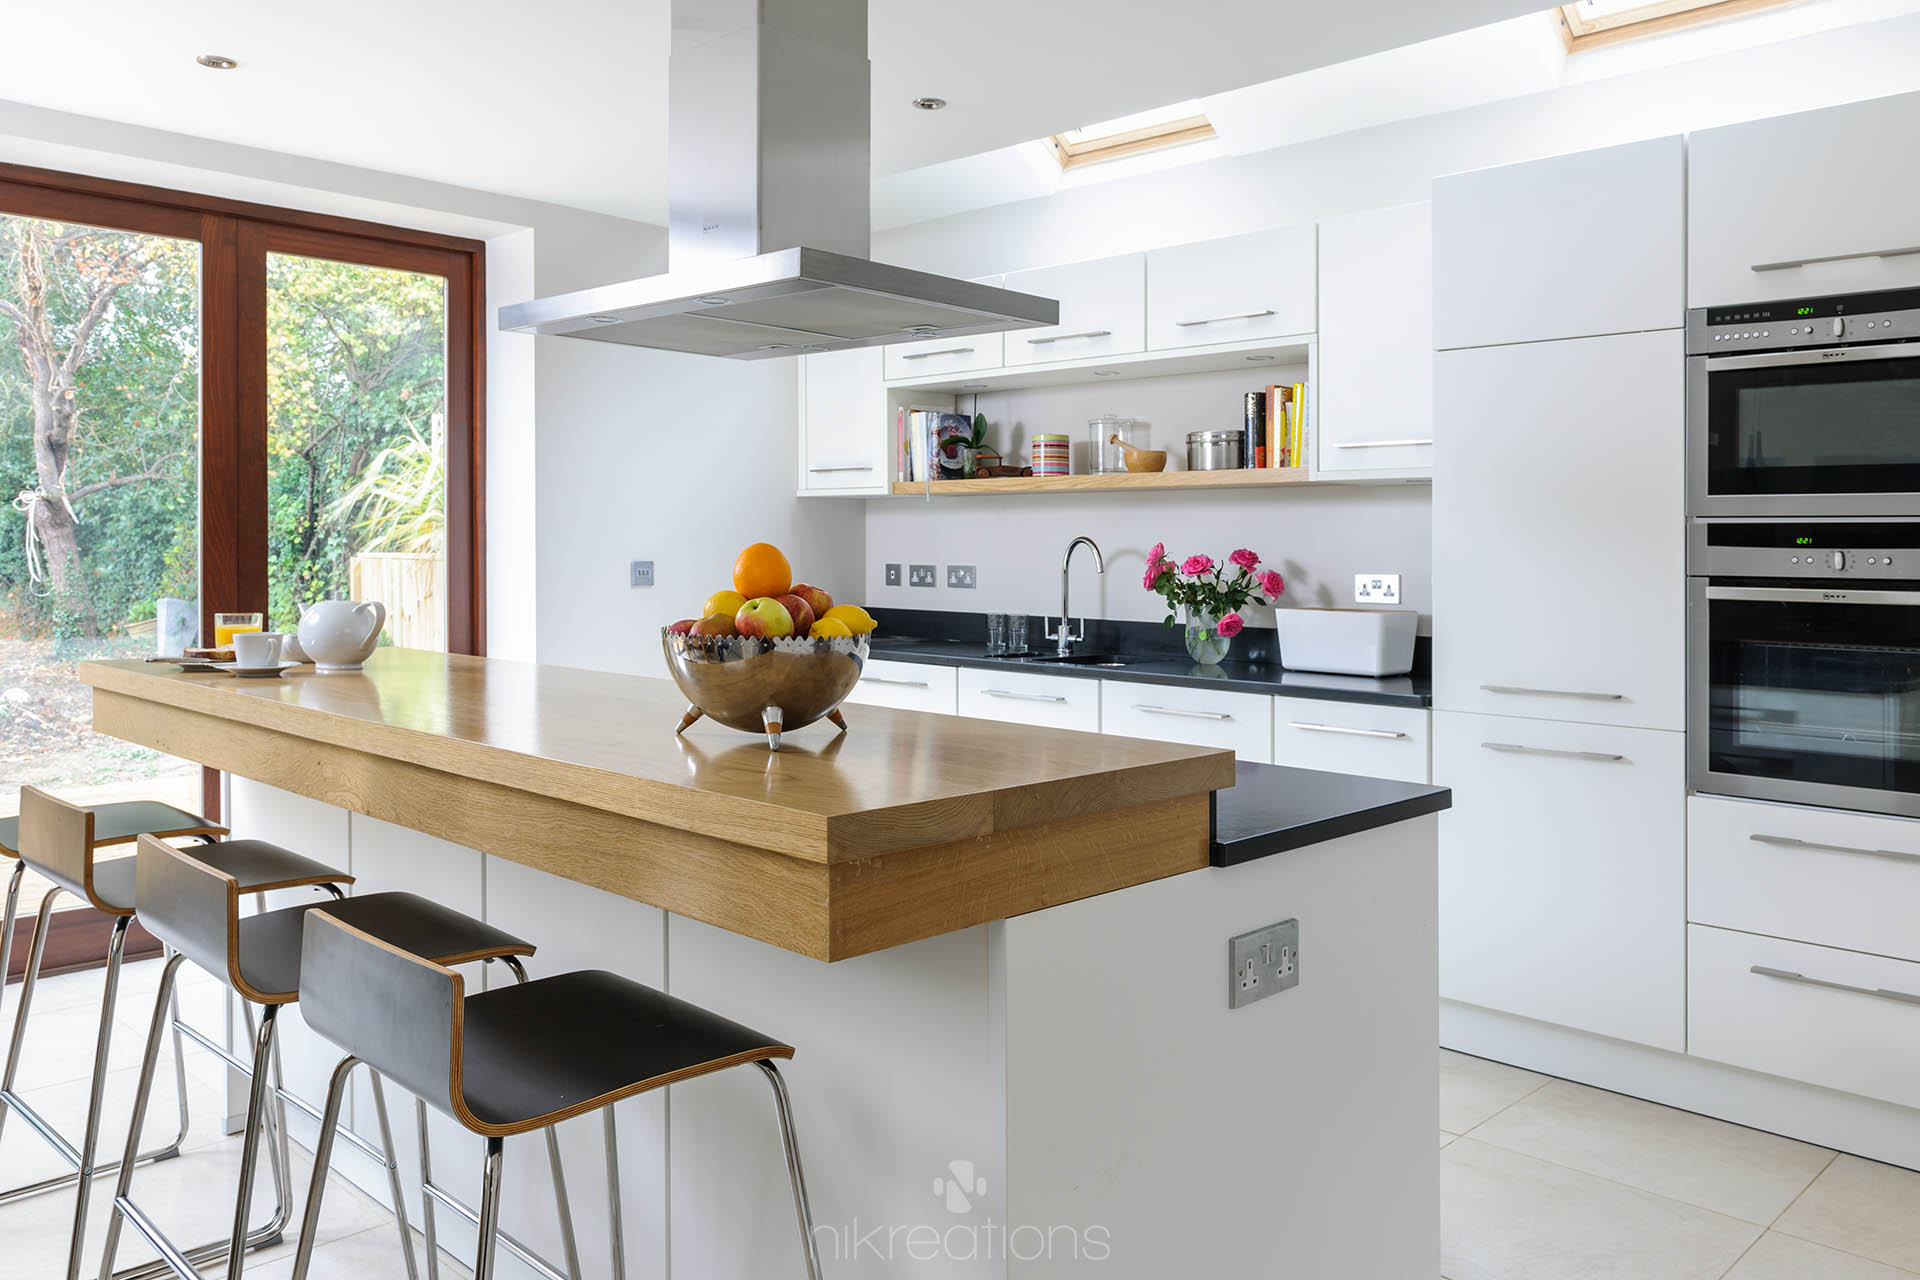 Kitchen Refurbishment, Oxford